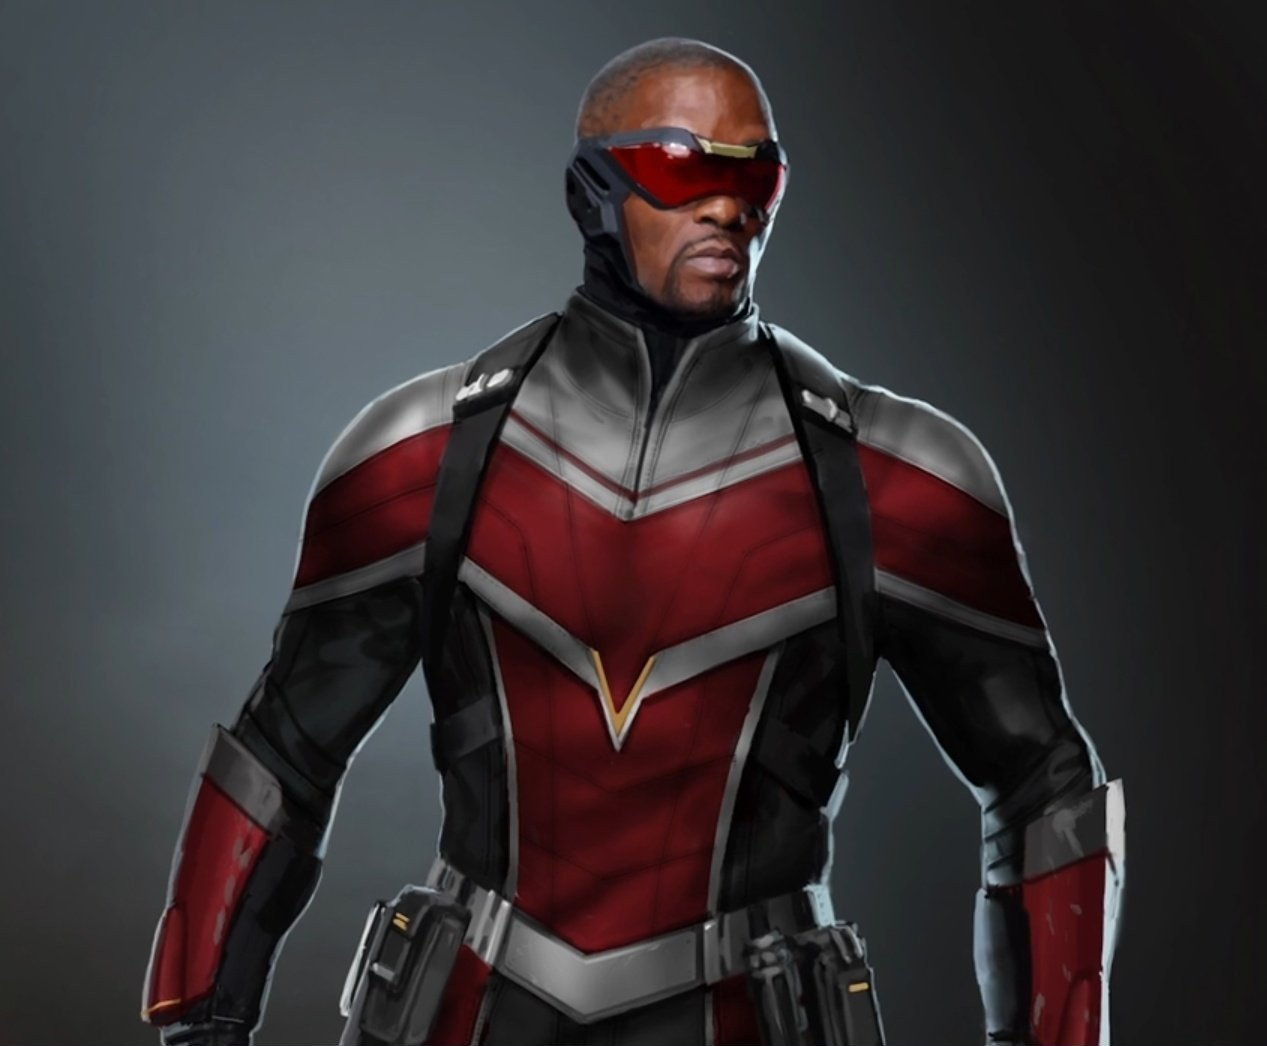 Concept art pour la série The Falcon and The Winter Soldier créée par Malcolm Spellman avec Falcon (Anthony Mackie)